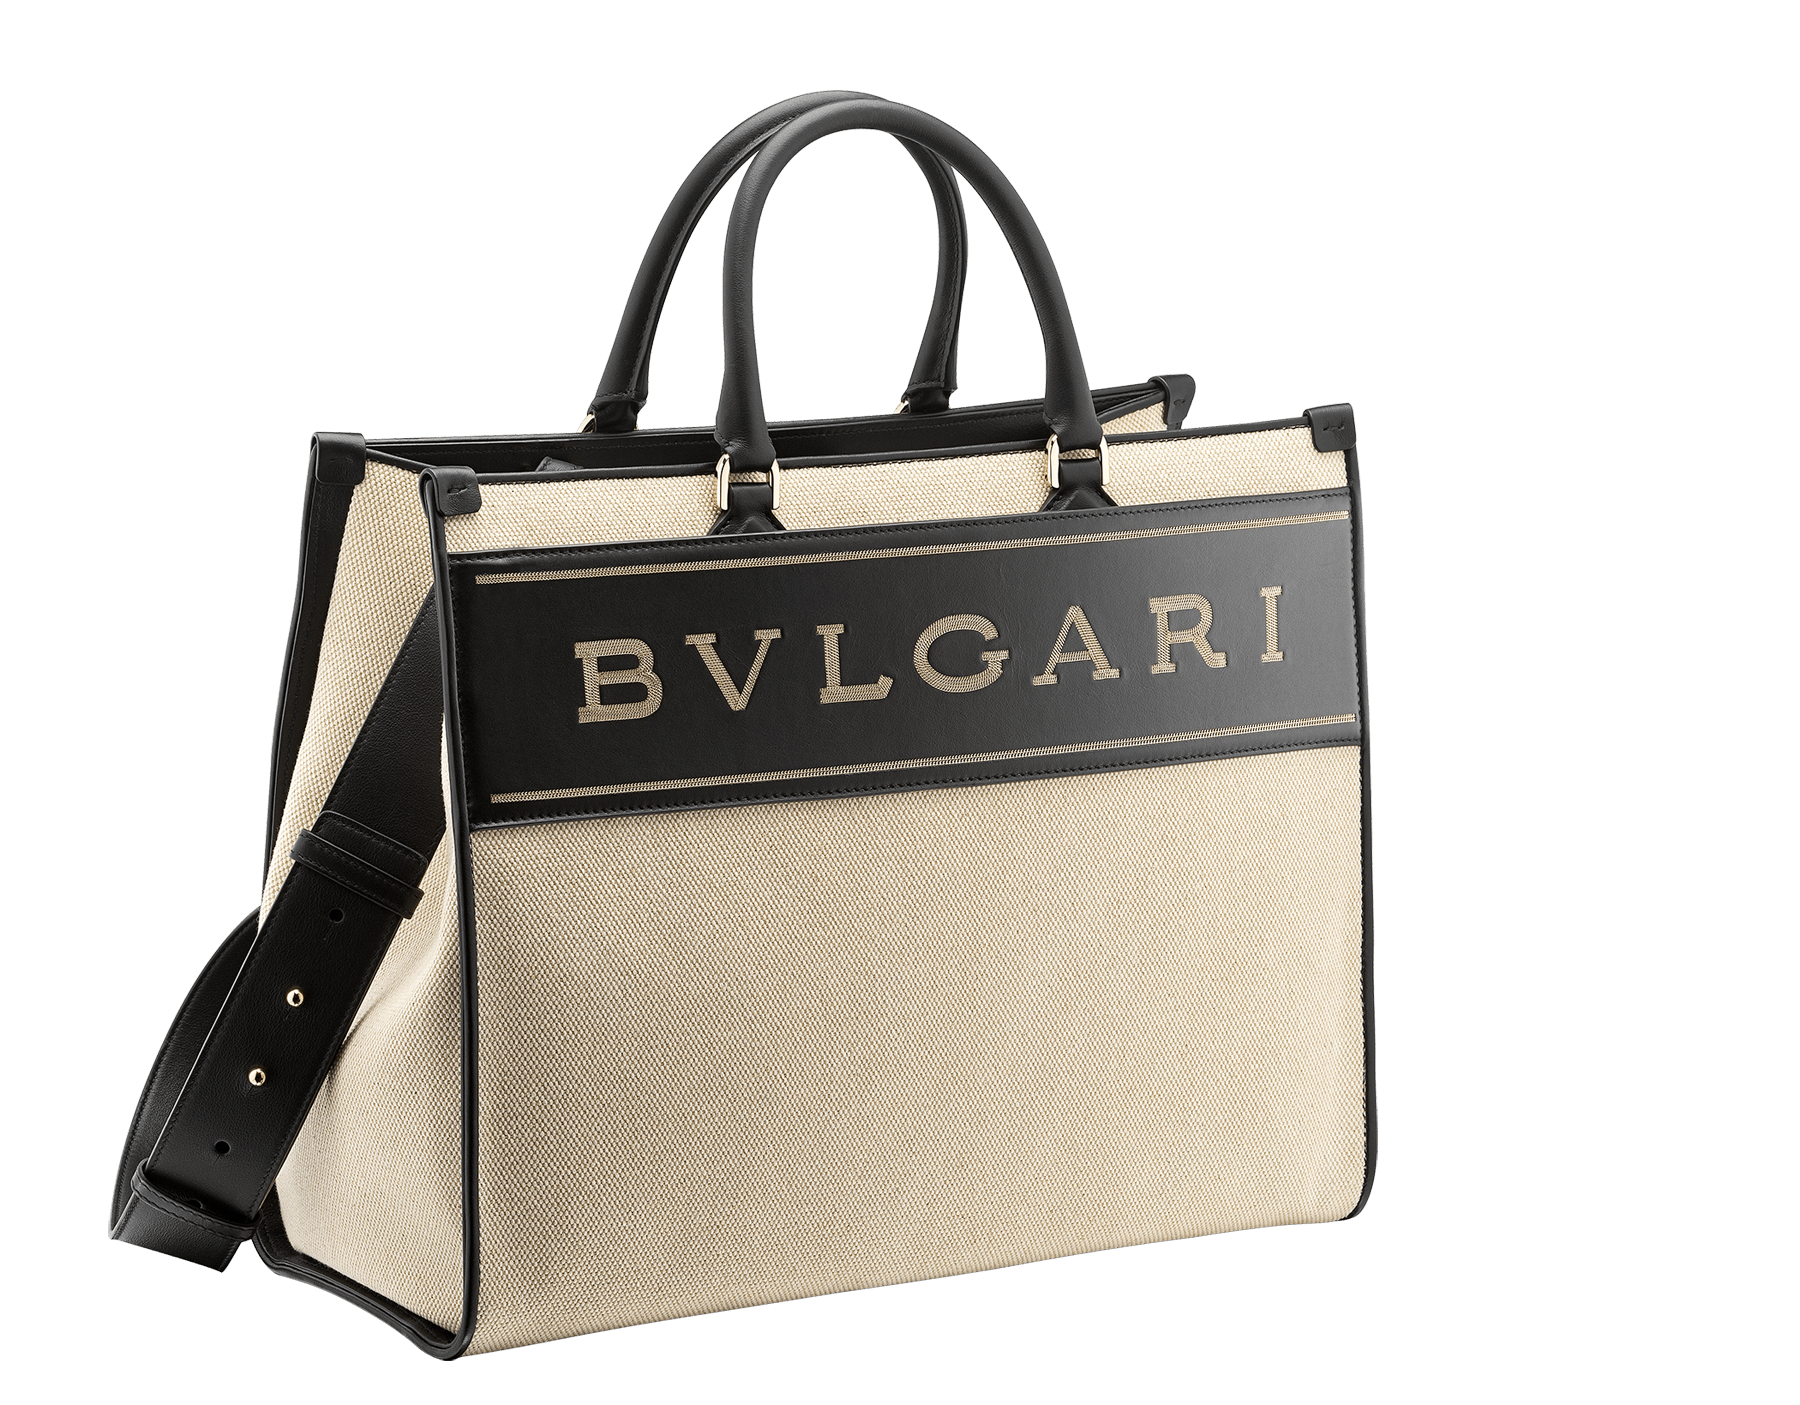 """""""Bvlgari Logo"""" large tote bag in black calf leather, with black grosgrain inner lining. Bvlgari logo featuring dark ruthenium-plated brass chain inserts on the black calf leather. BVL-1160 image 2"""